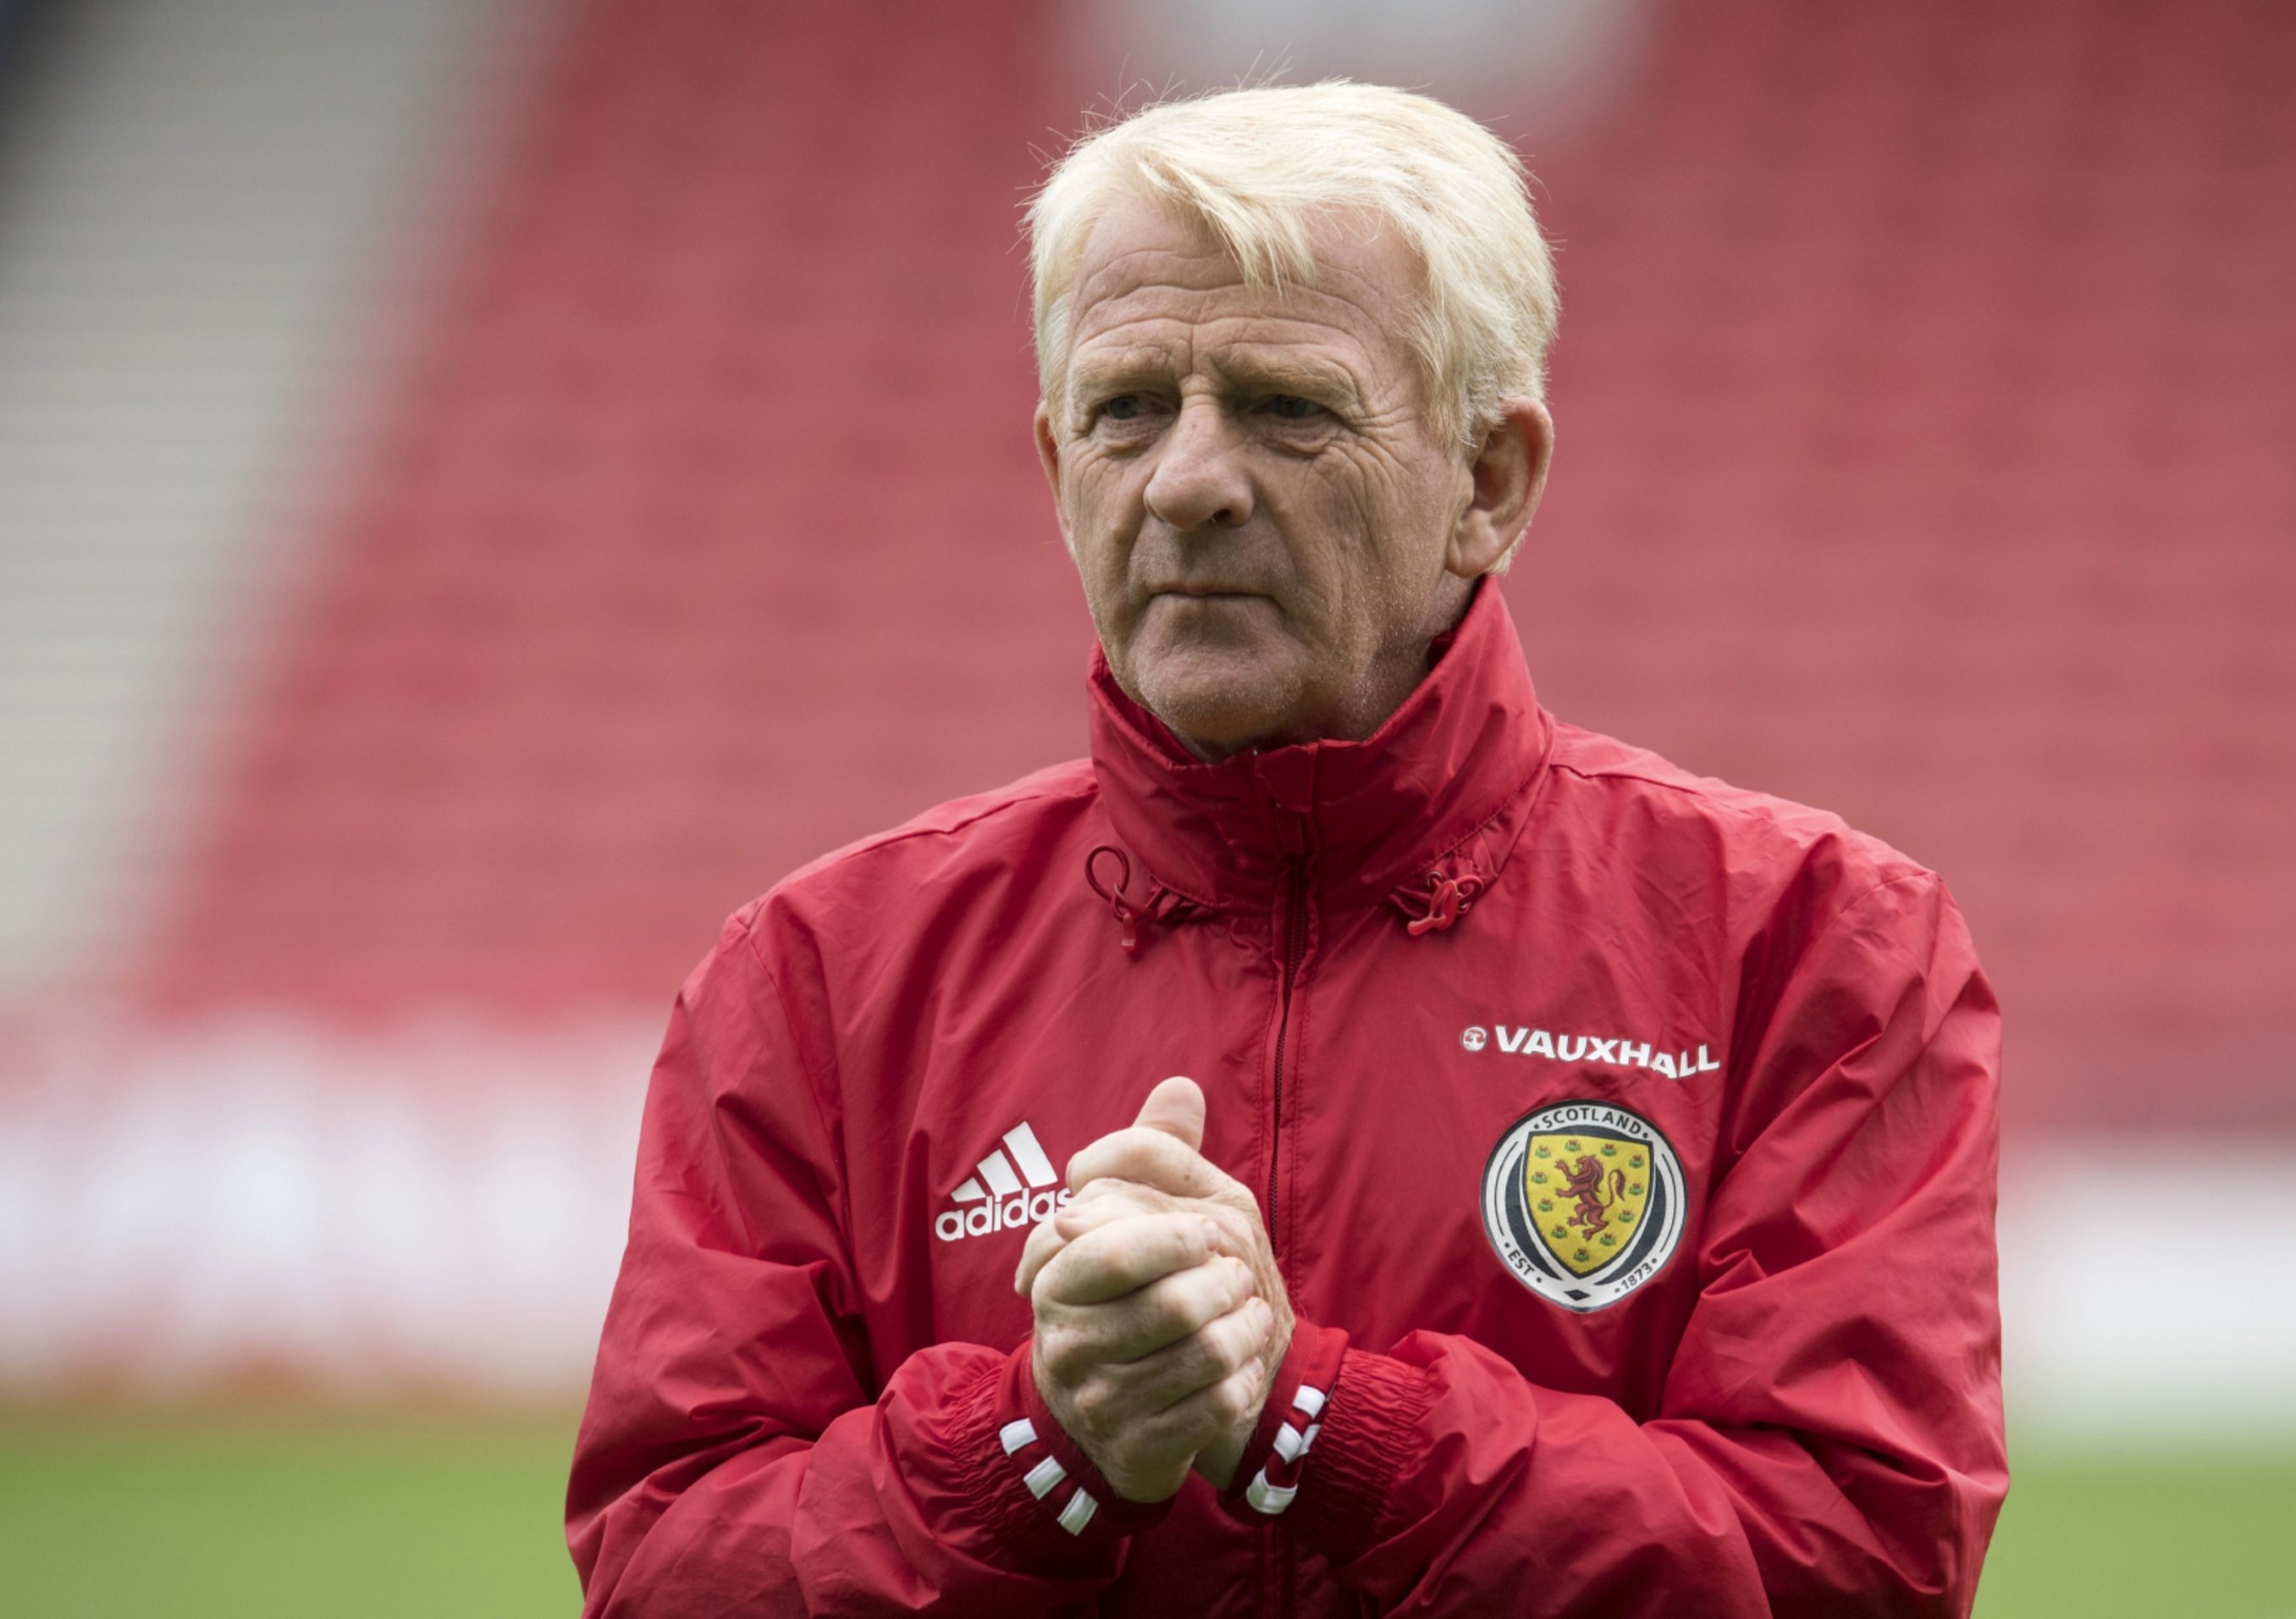 Gordon Strachan is hoping to lead Scotland to their first major tournament for 20 years.